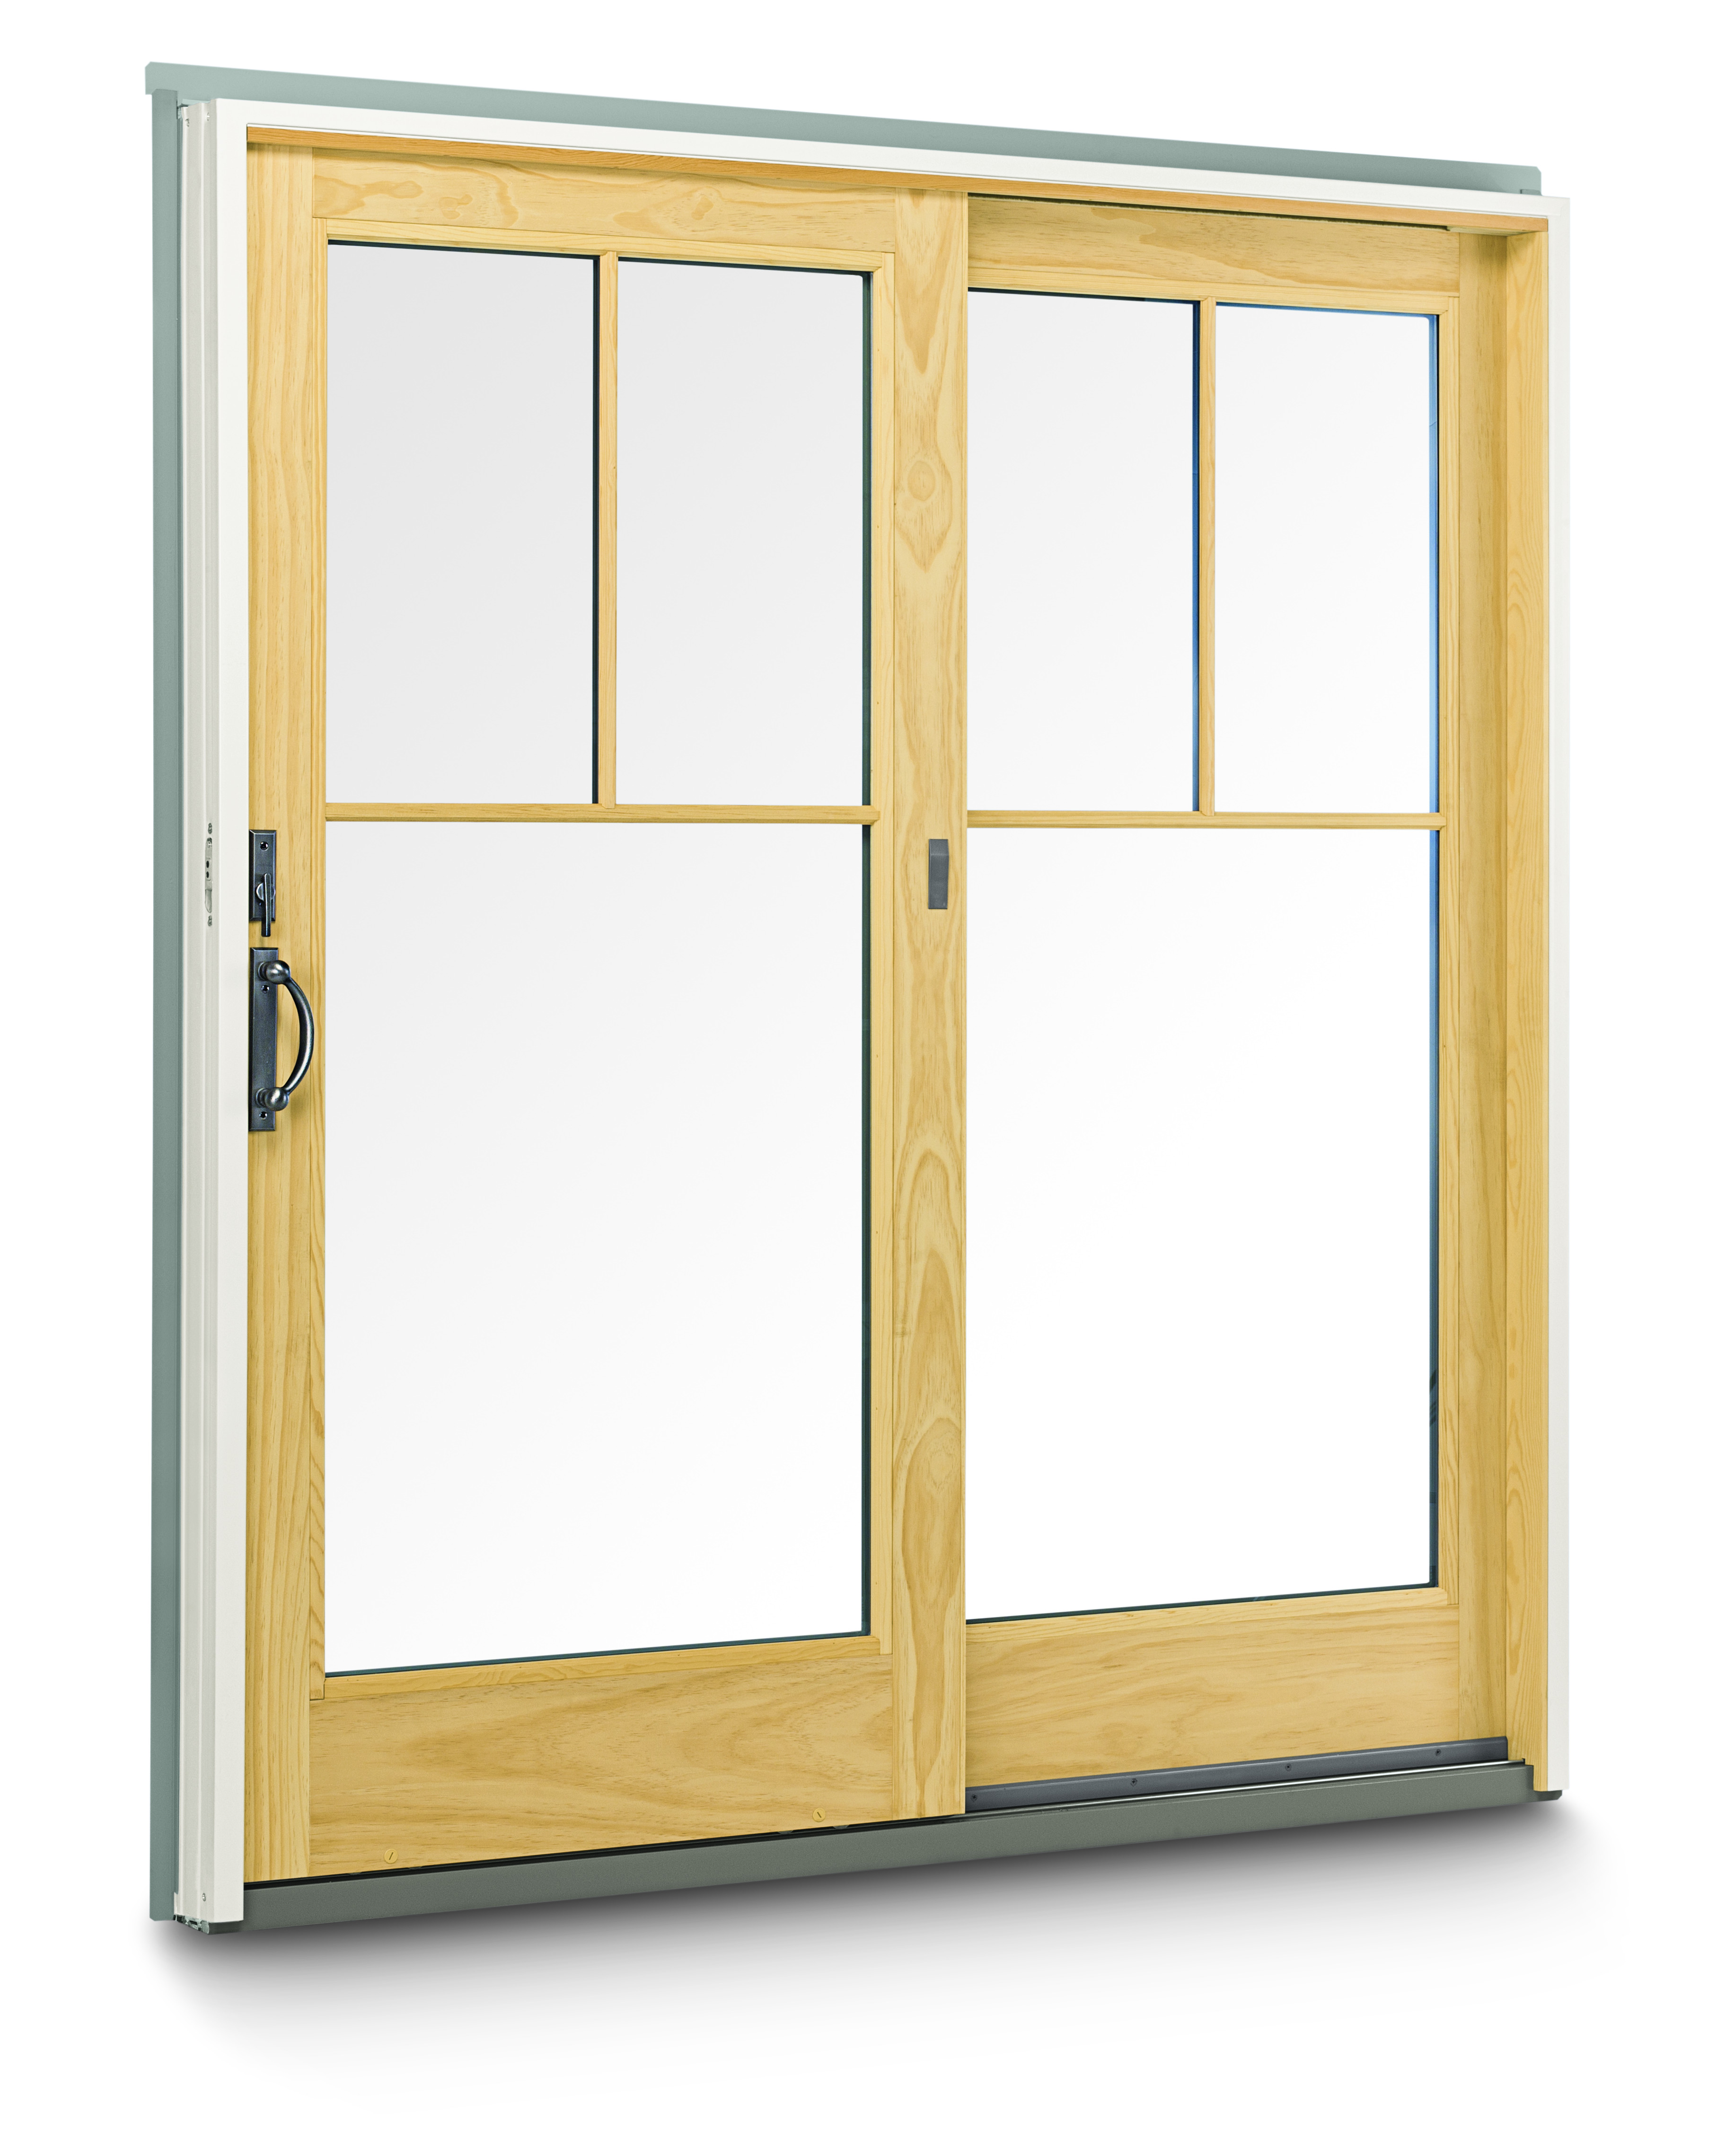 Andersen frenchwood gliding patio door andersen 400 for French gliding patio doors